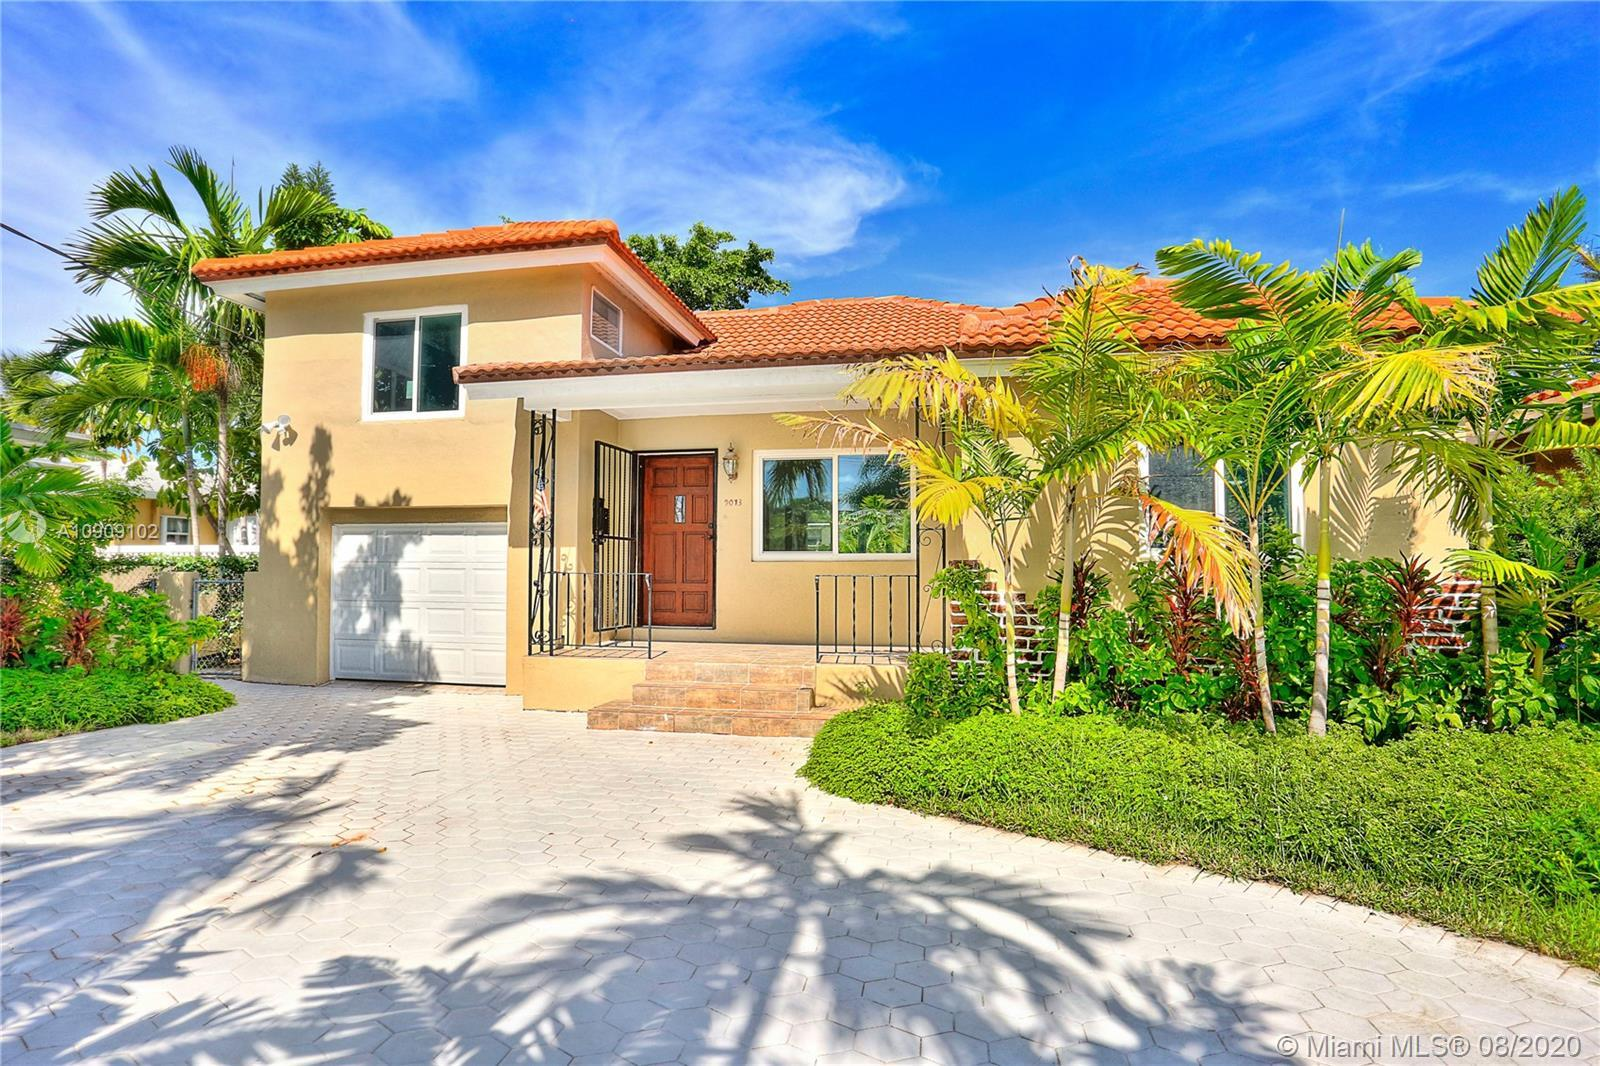 Beautifully remodeled beach home with Huge Backyard! This charming 3 BR and 2 BA plus a one car gara